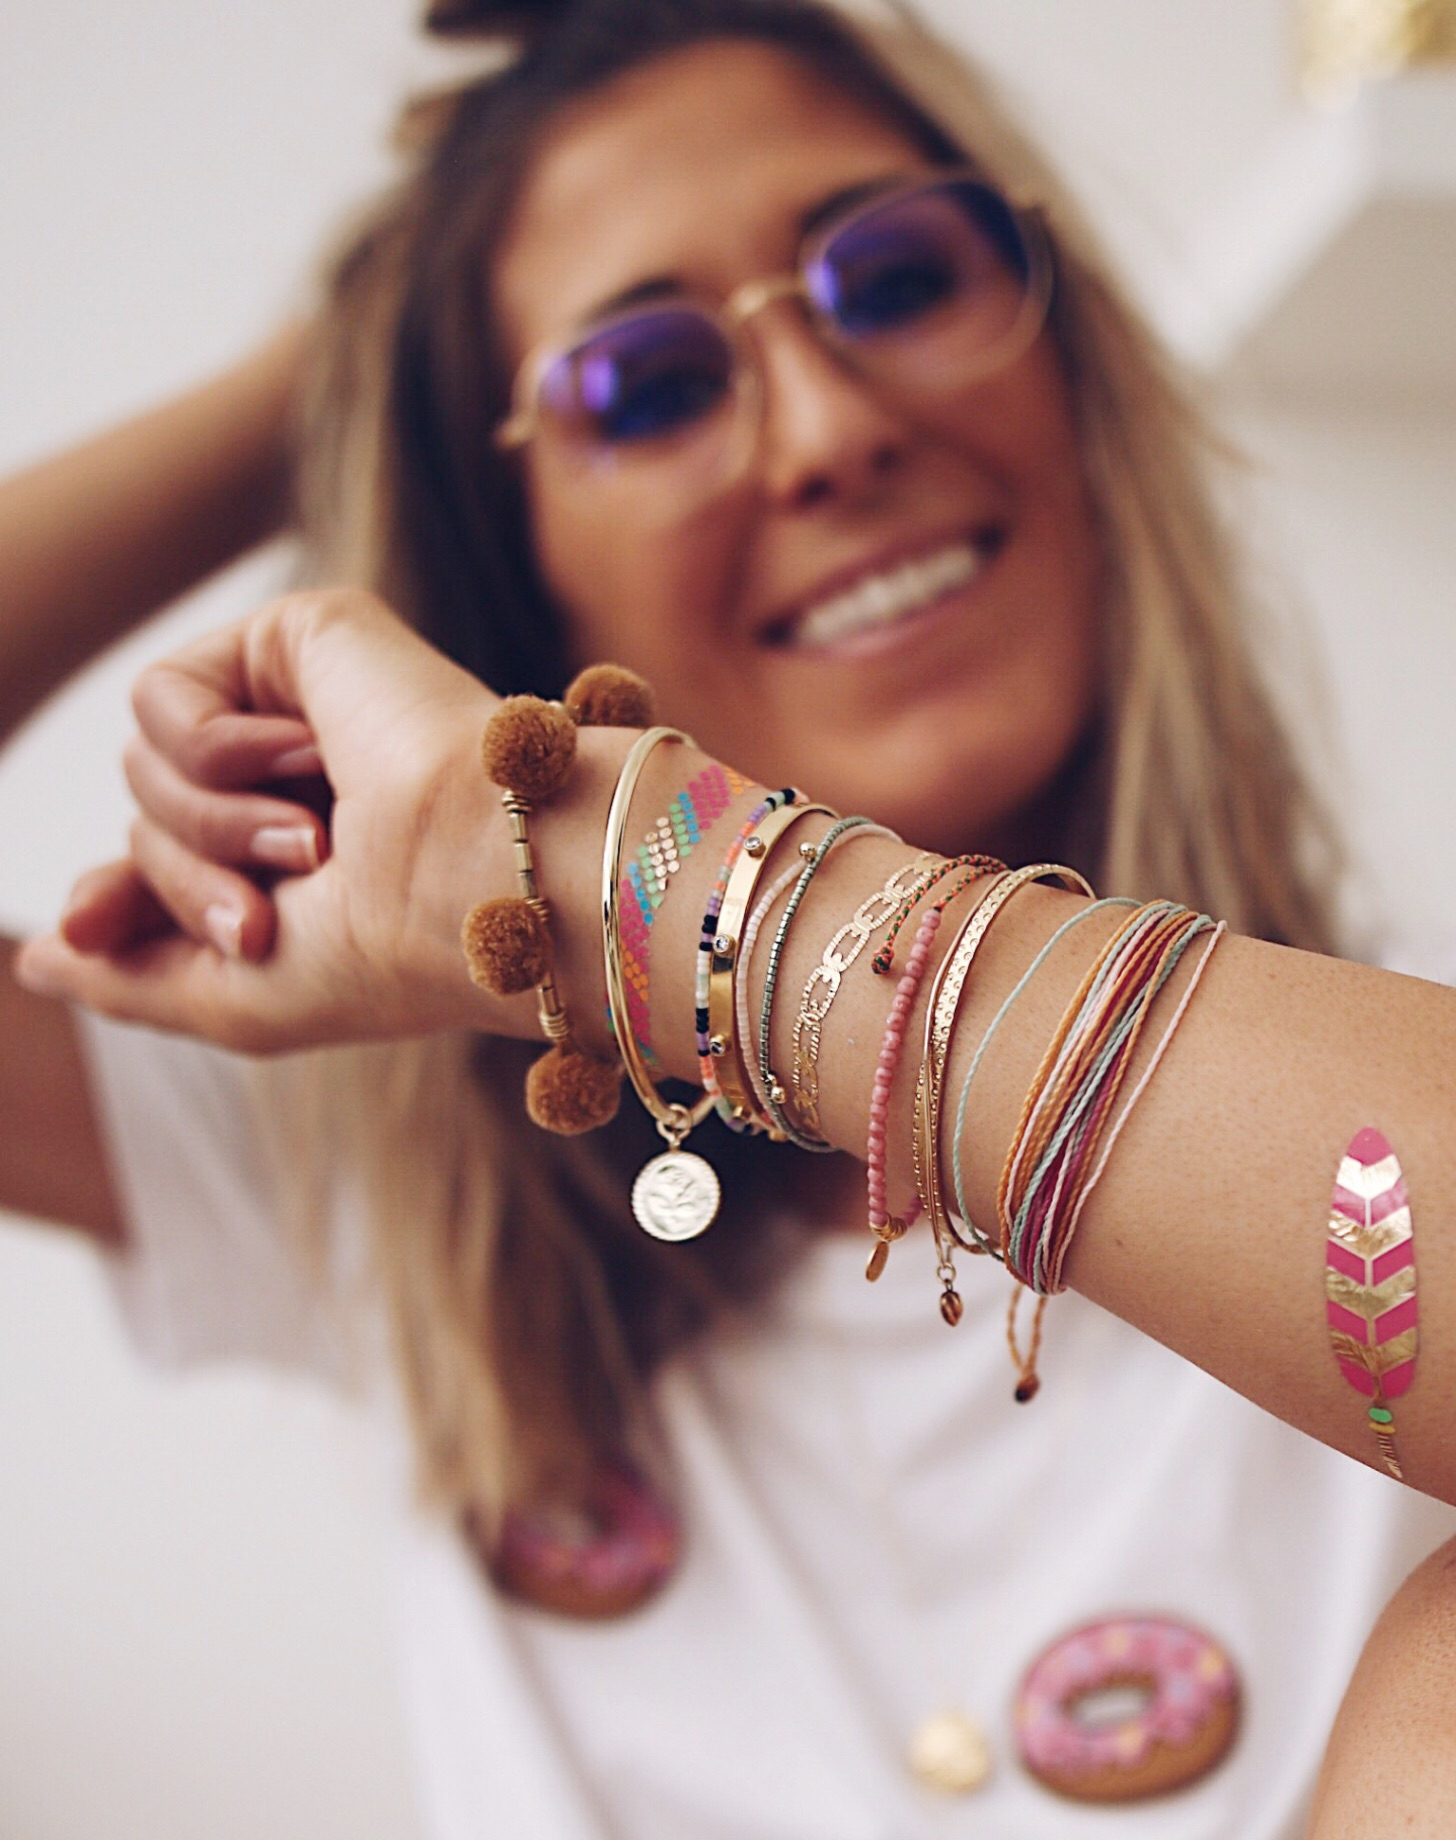 FLASHY ARM, arm candy, gold bangles, flash tatoos, colorful bracelets, jewelery addict, jewelry blogger, chon and chon, Chon & CHON